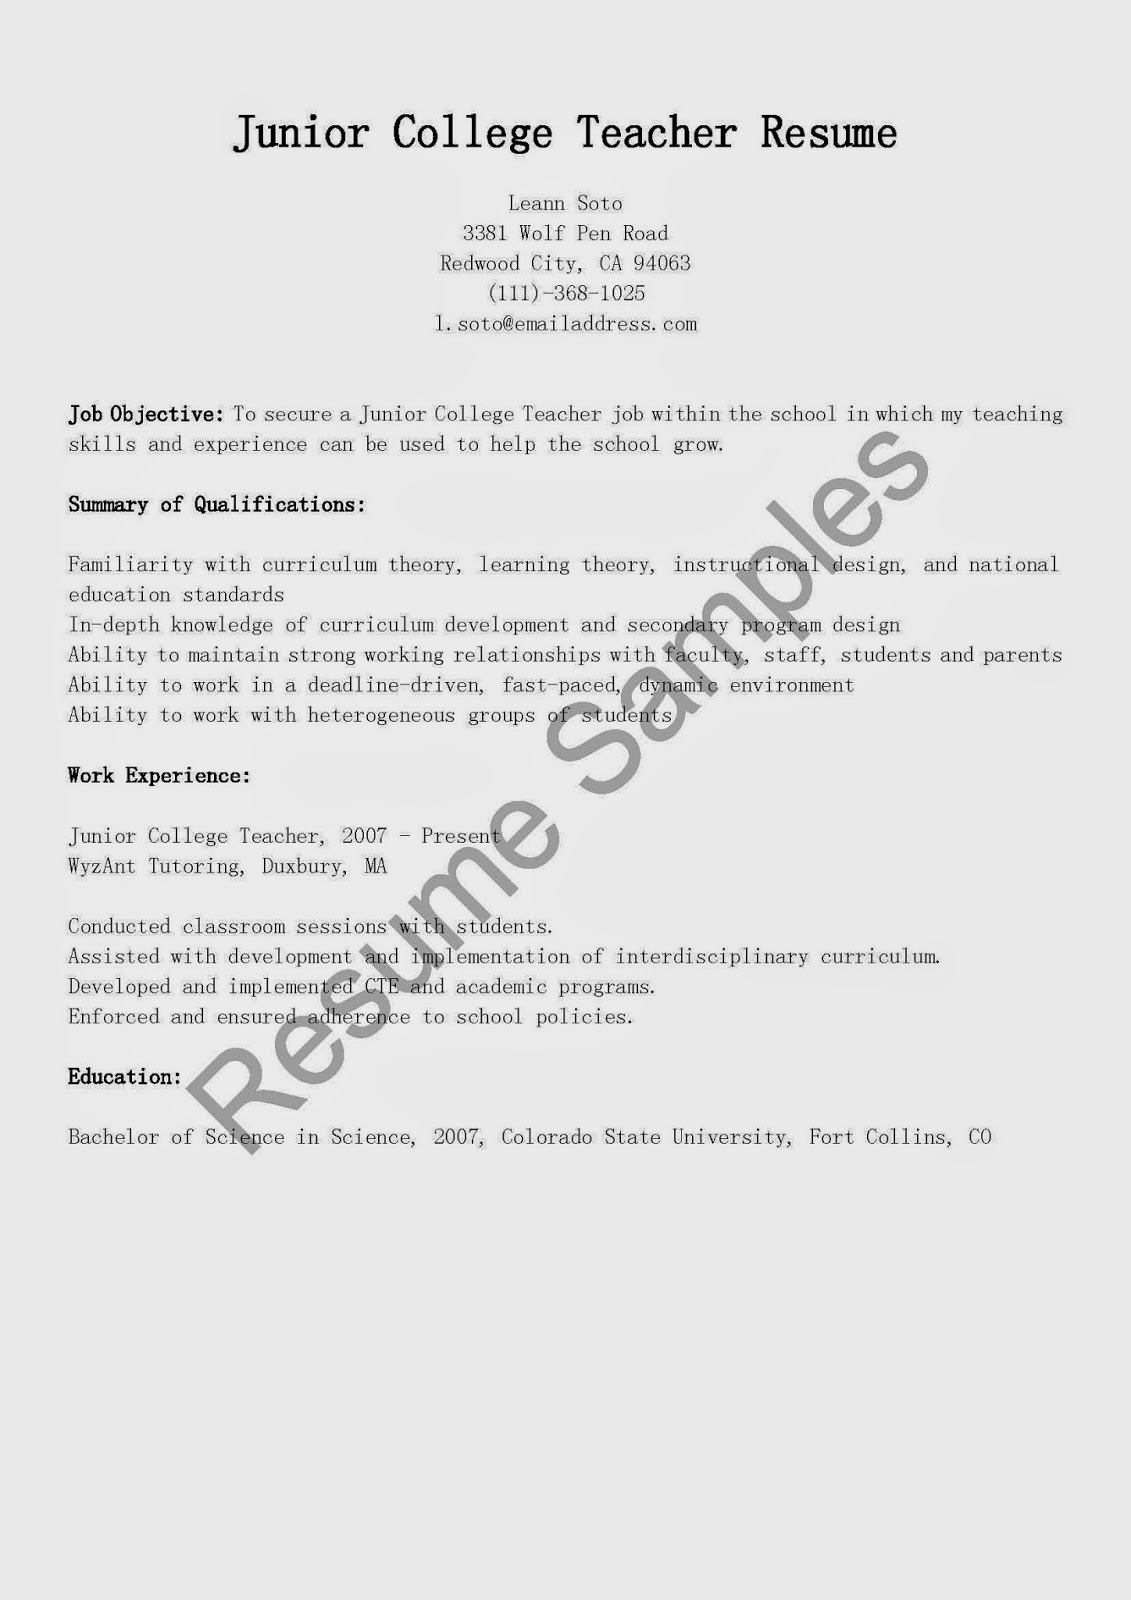 Cardiac Nurse Resume Sample Samples Of Resume Letter For Student Cardiac Rehab Nurse